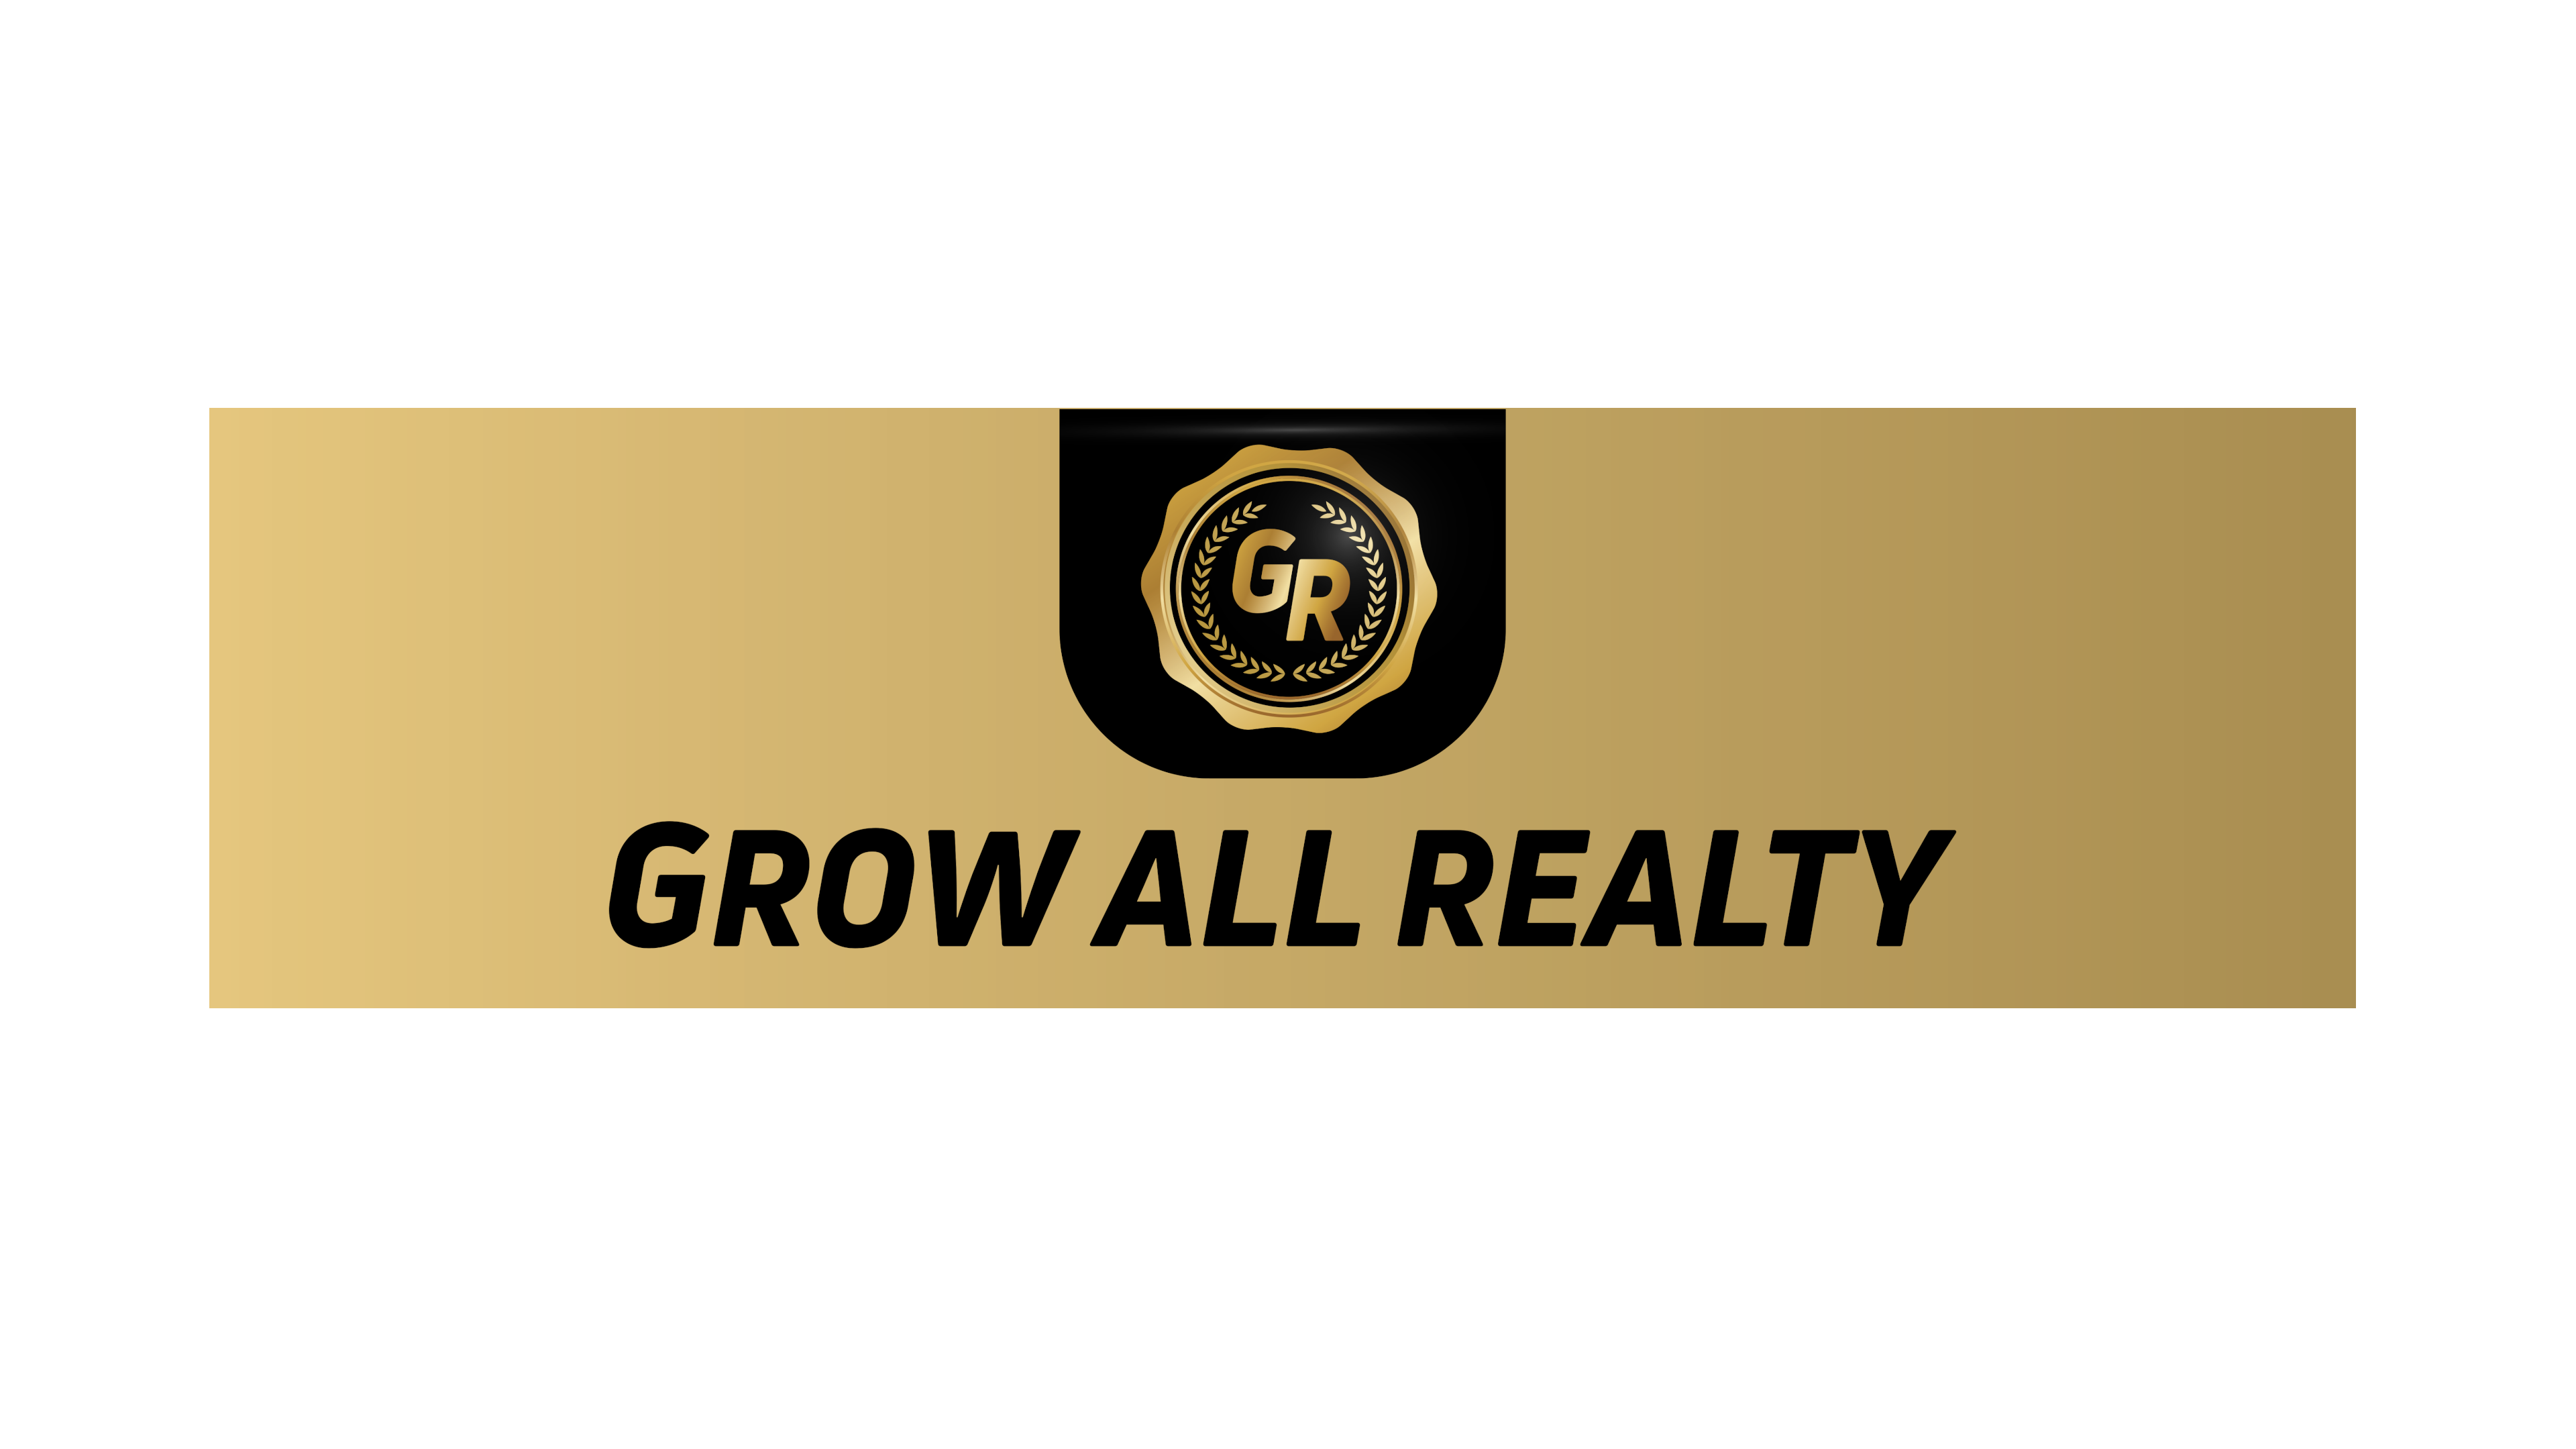 Grow All Realty